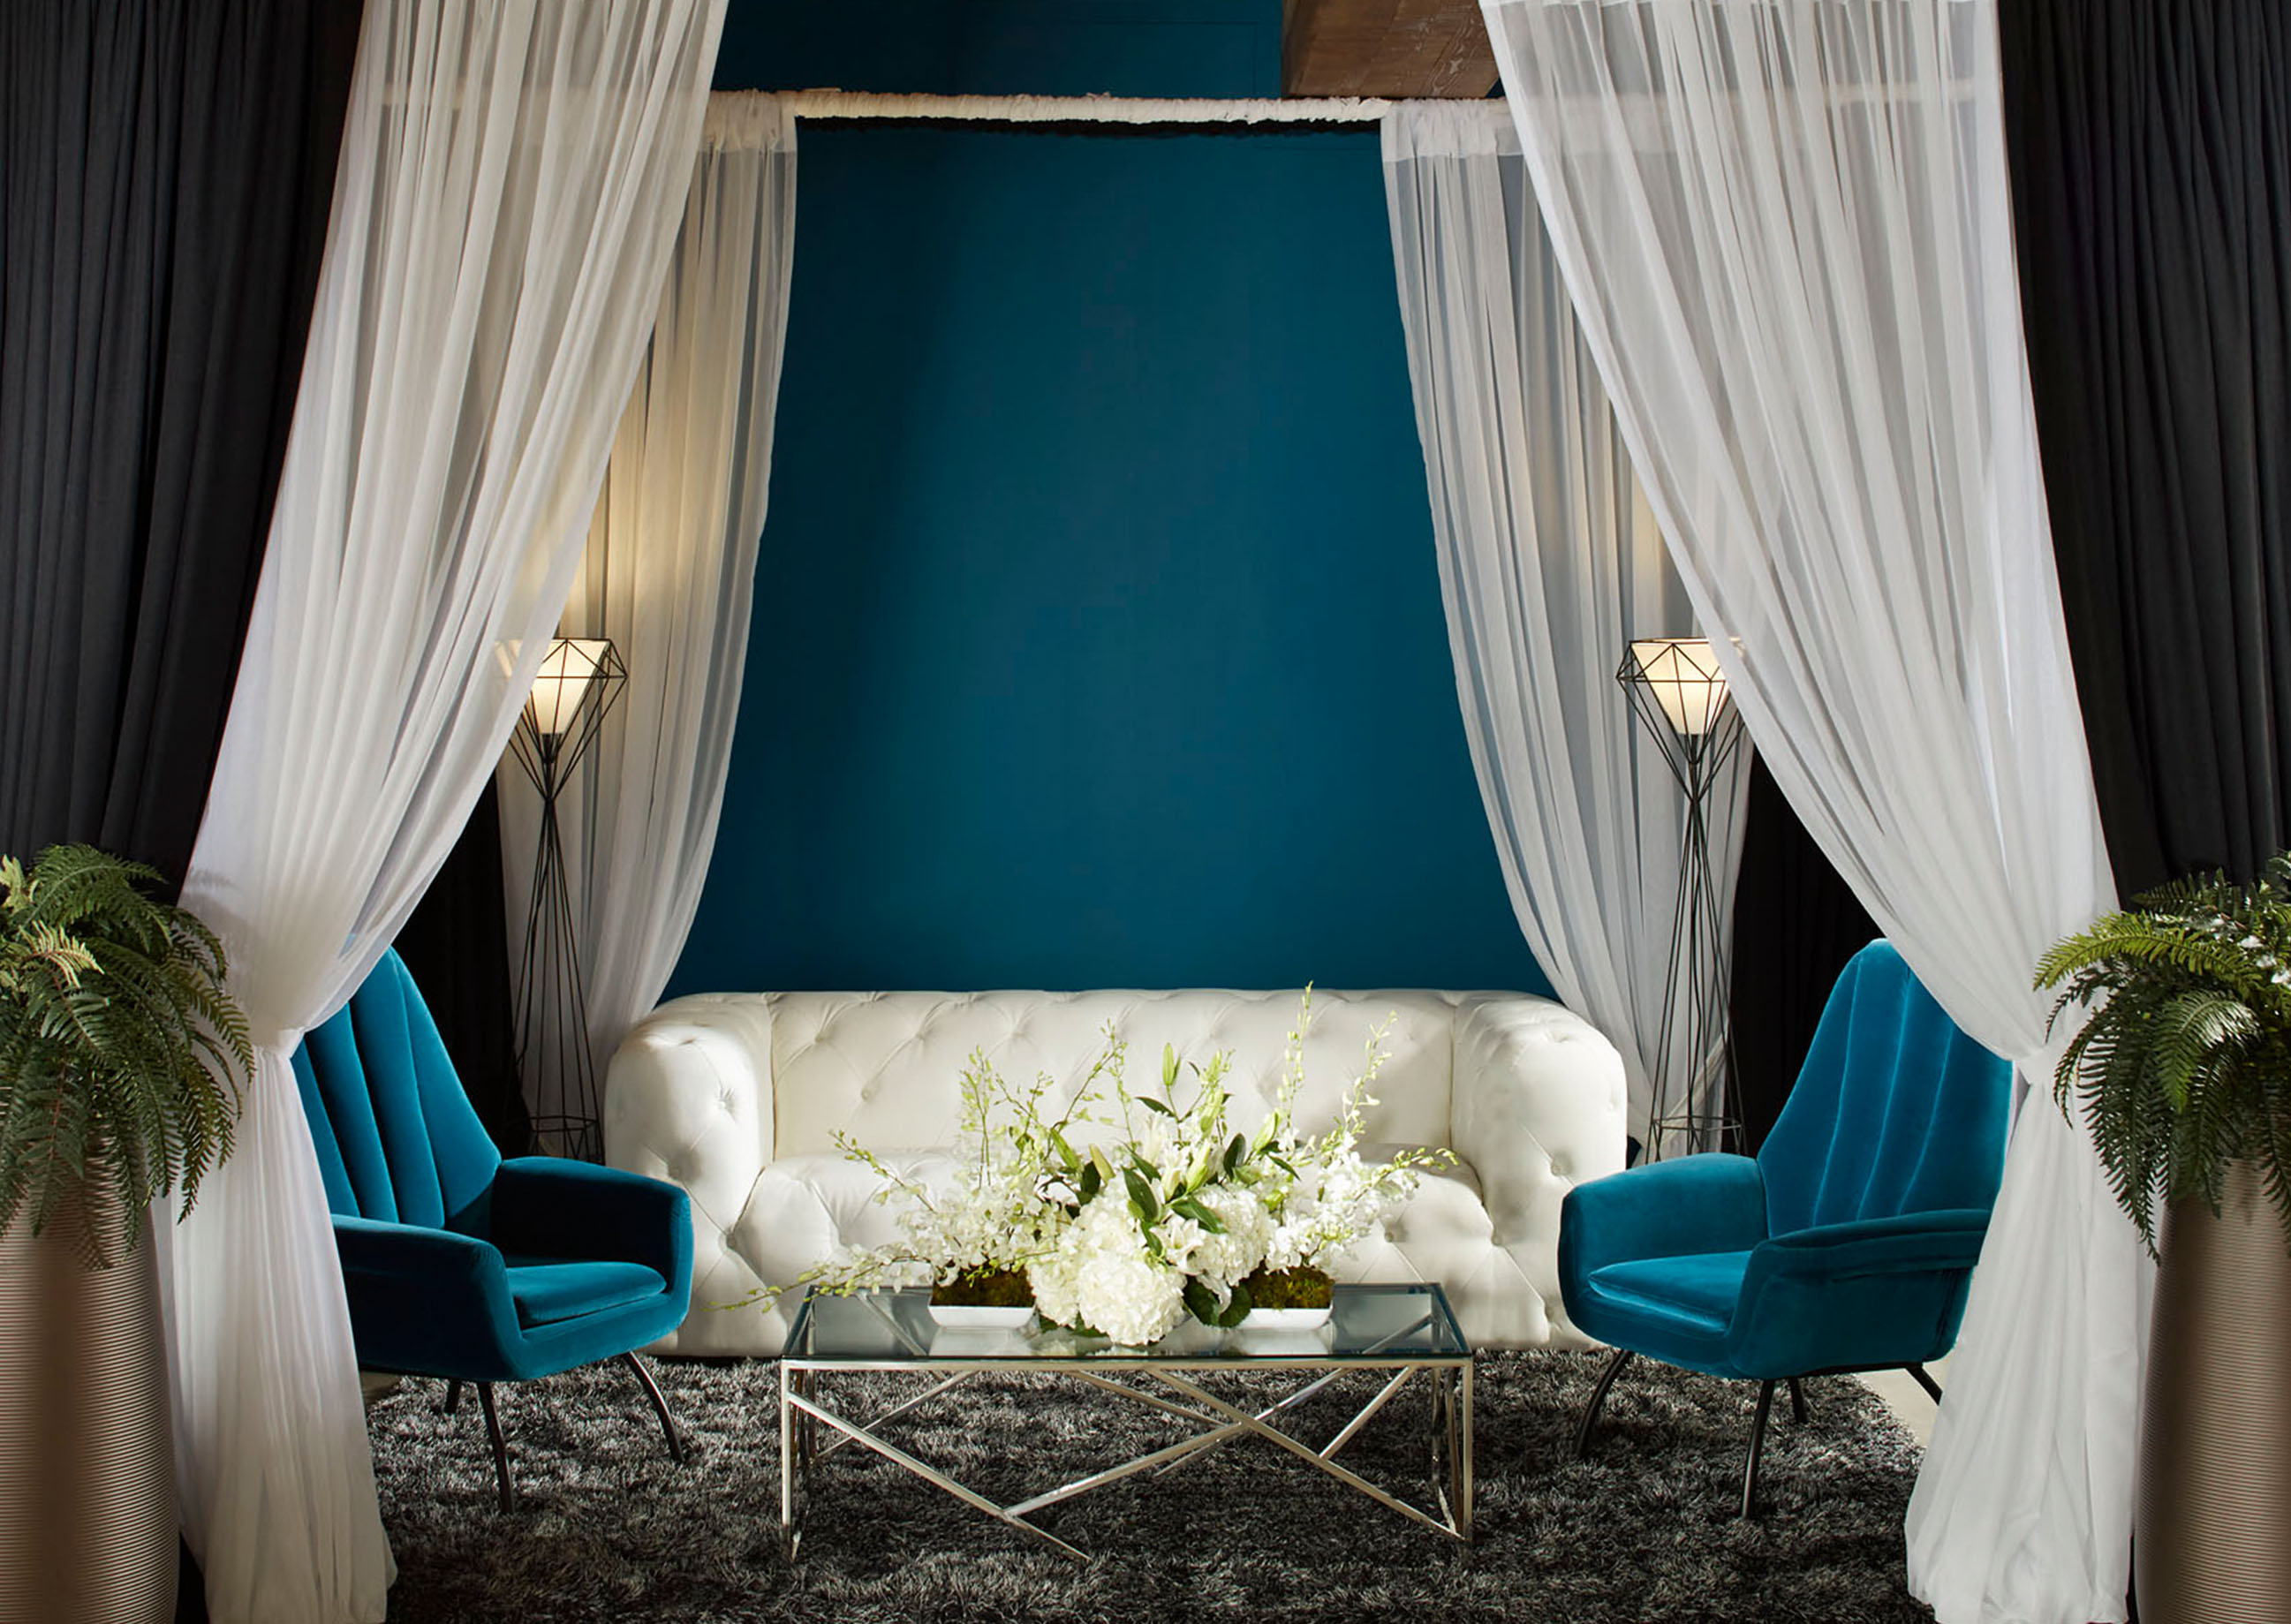 Event with white and teal furniture